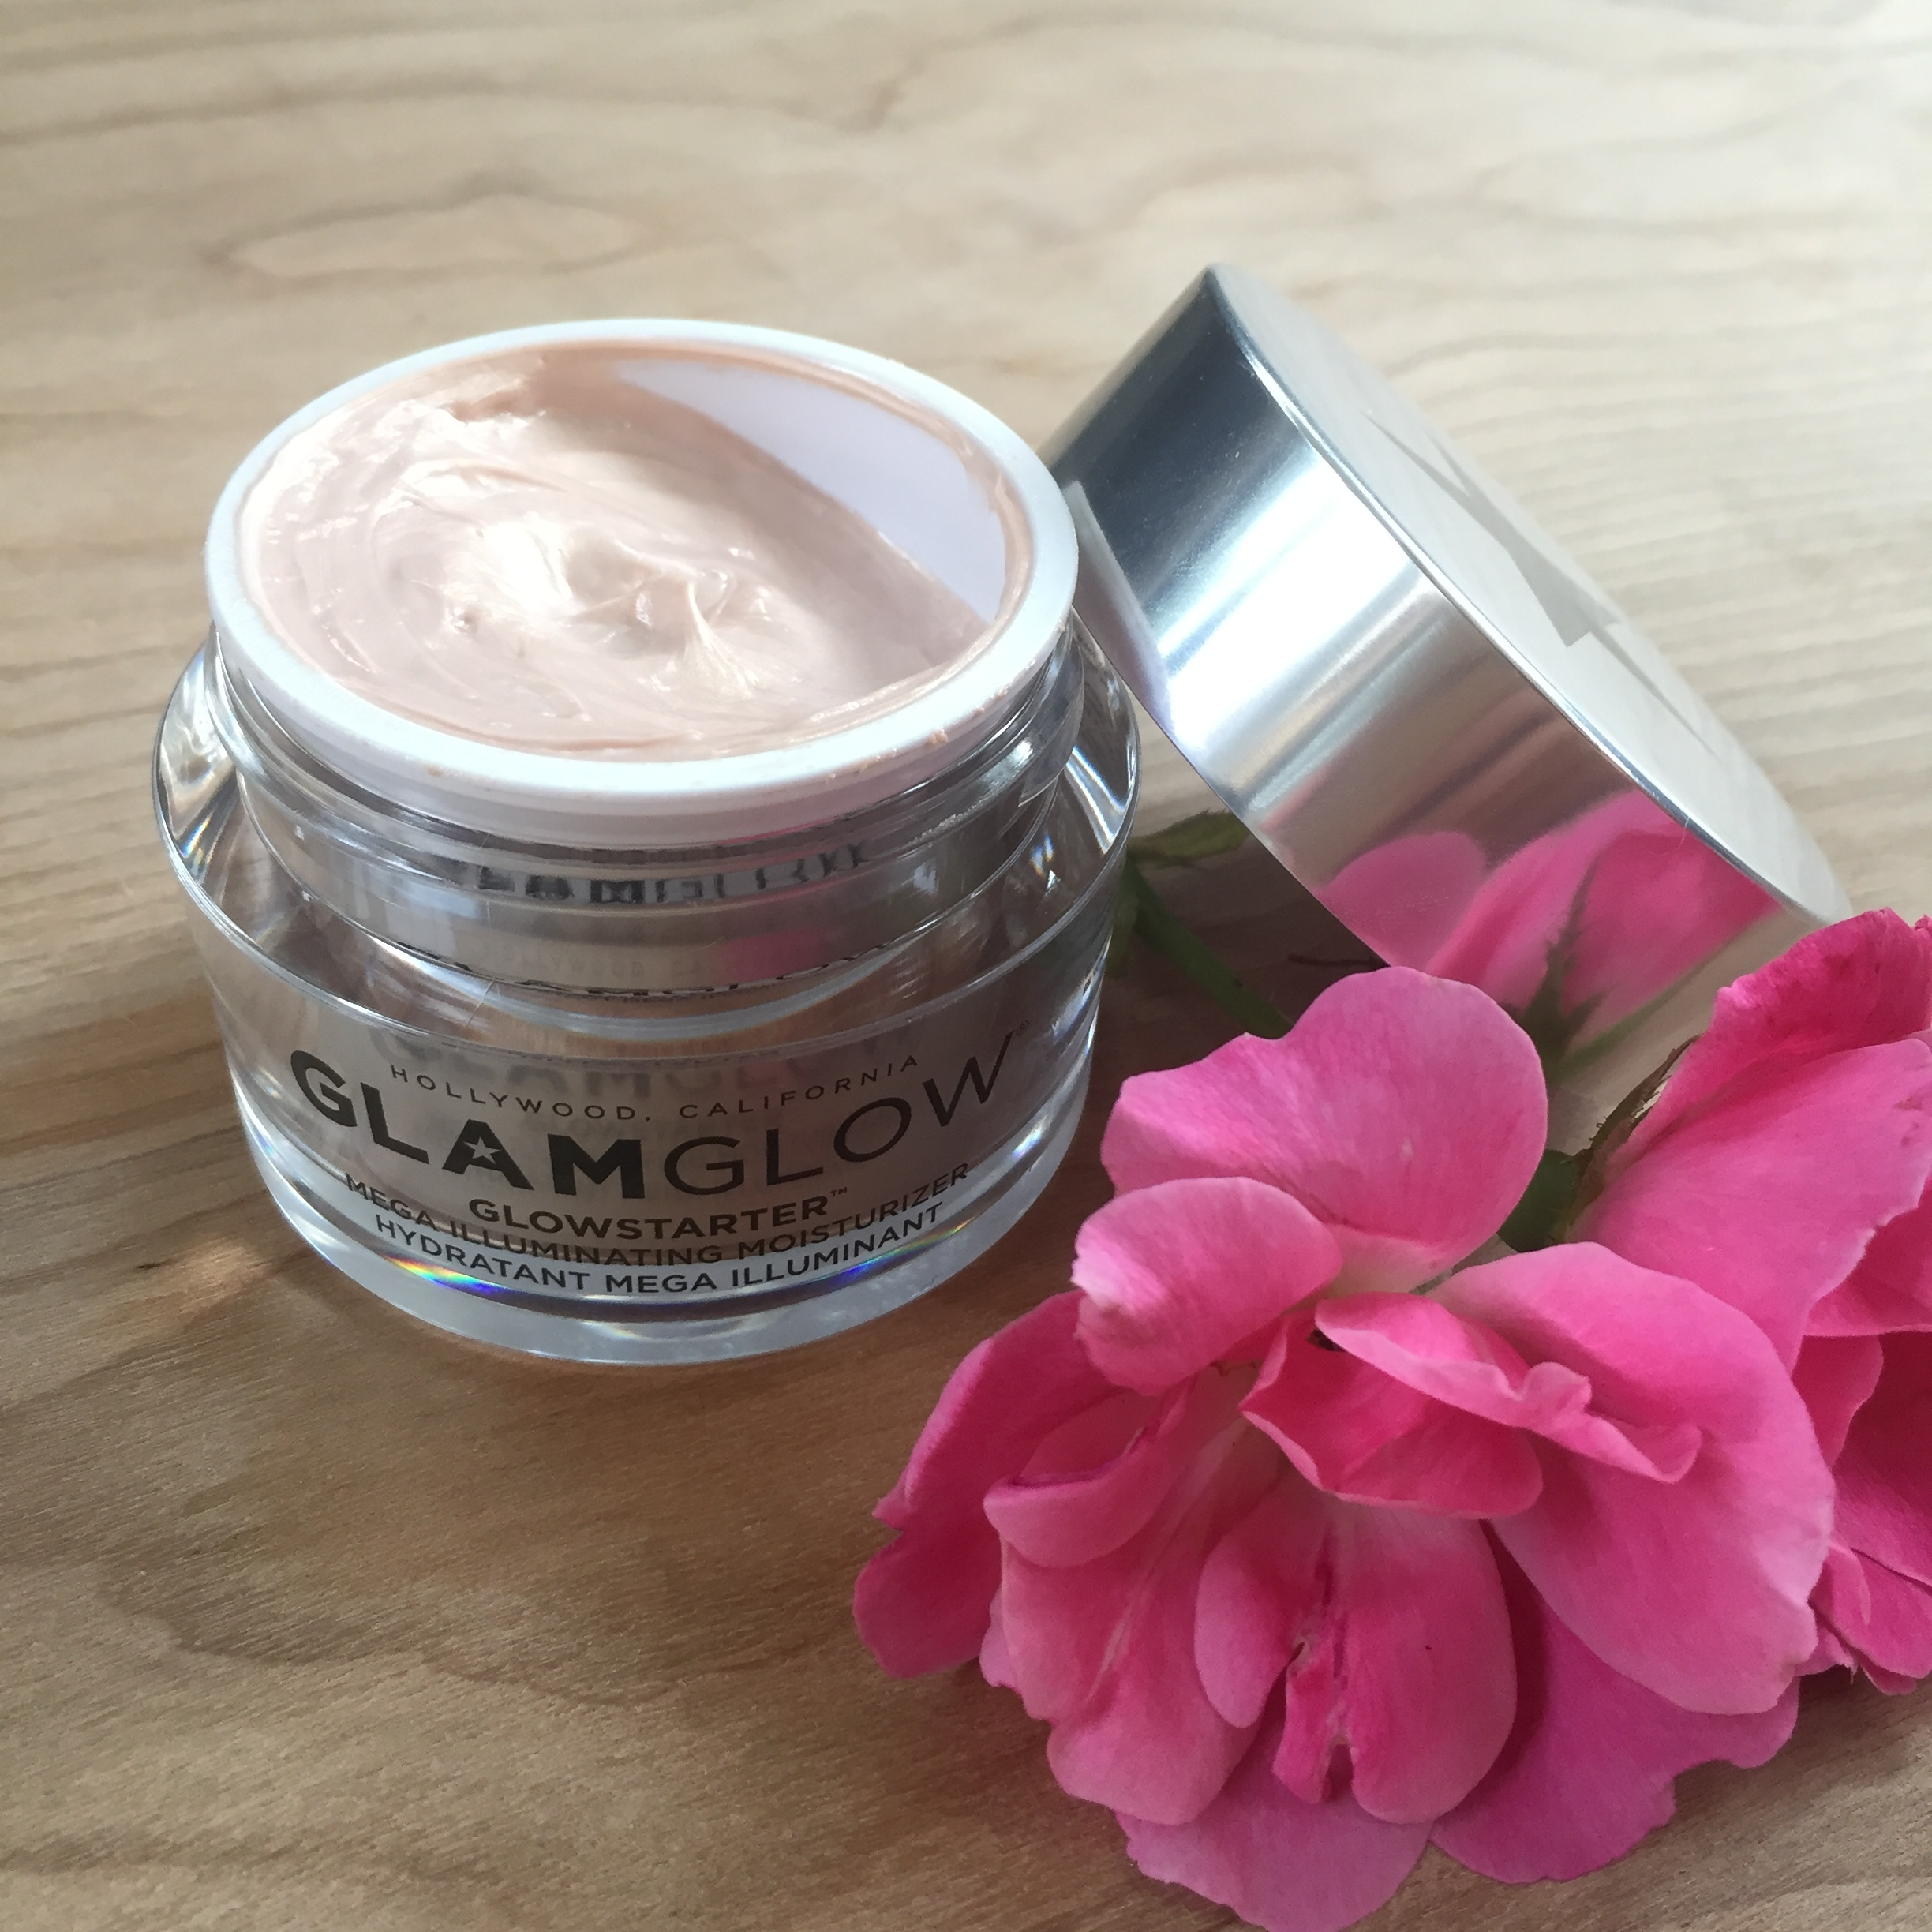 glamglow glowstarter | pinebarrenbeauty.com